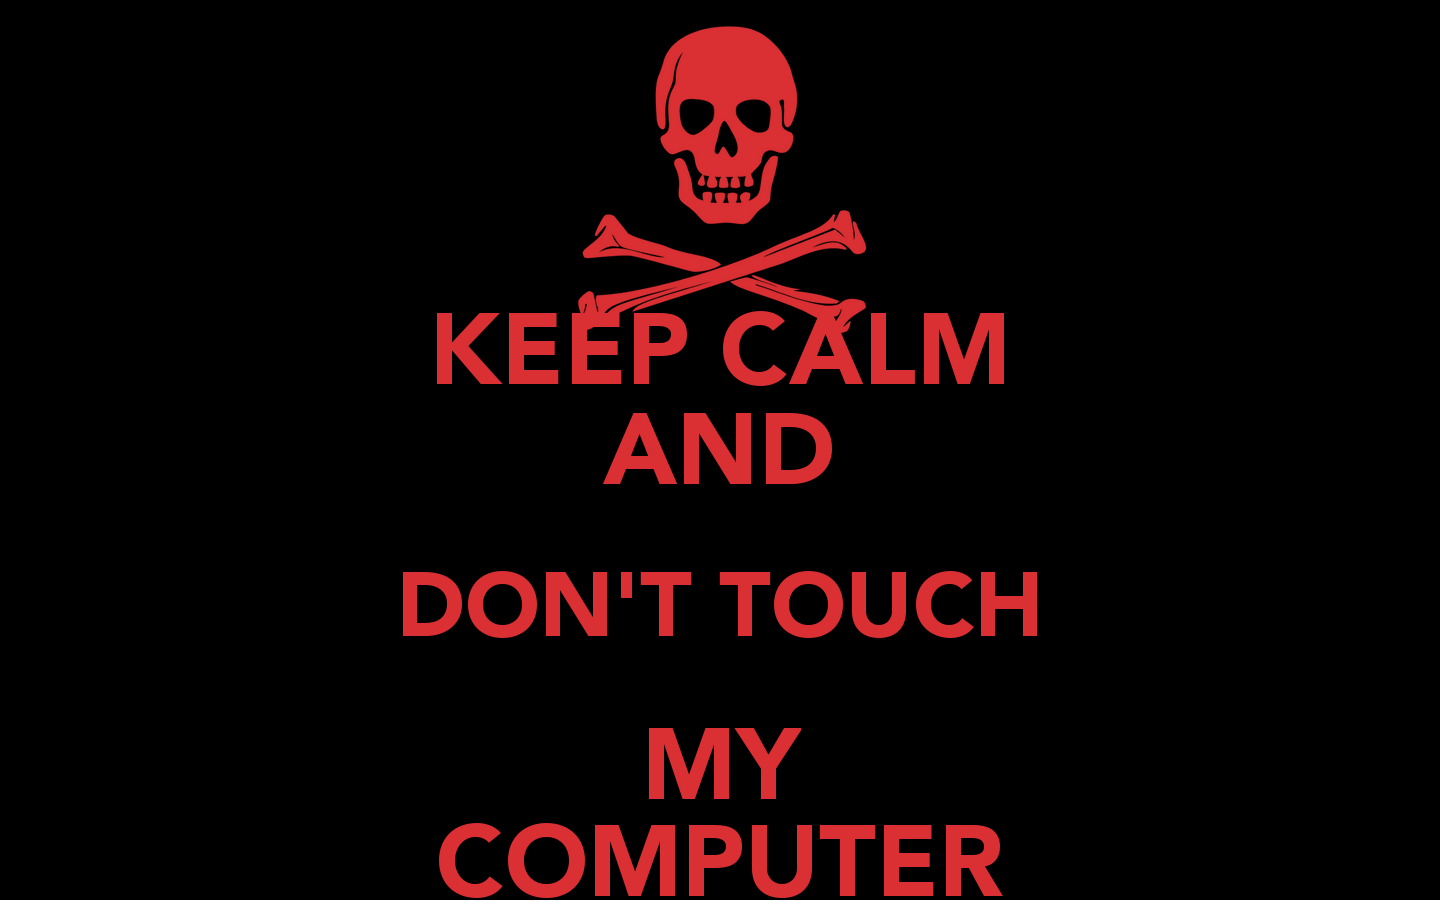 1440x900 47+] Don't Touch My Computer Wallpaper on WallpaperSafari